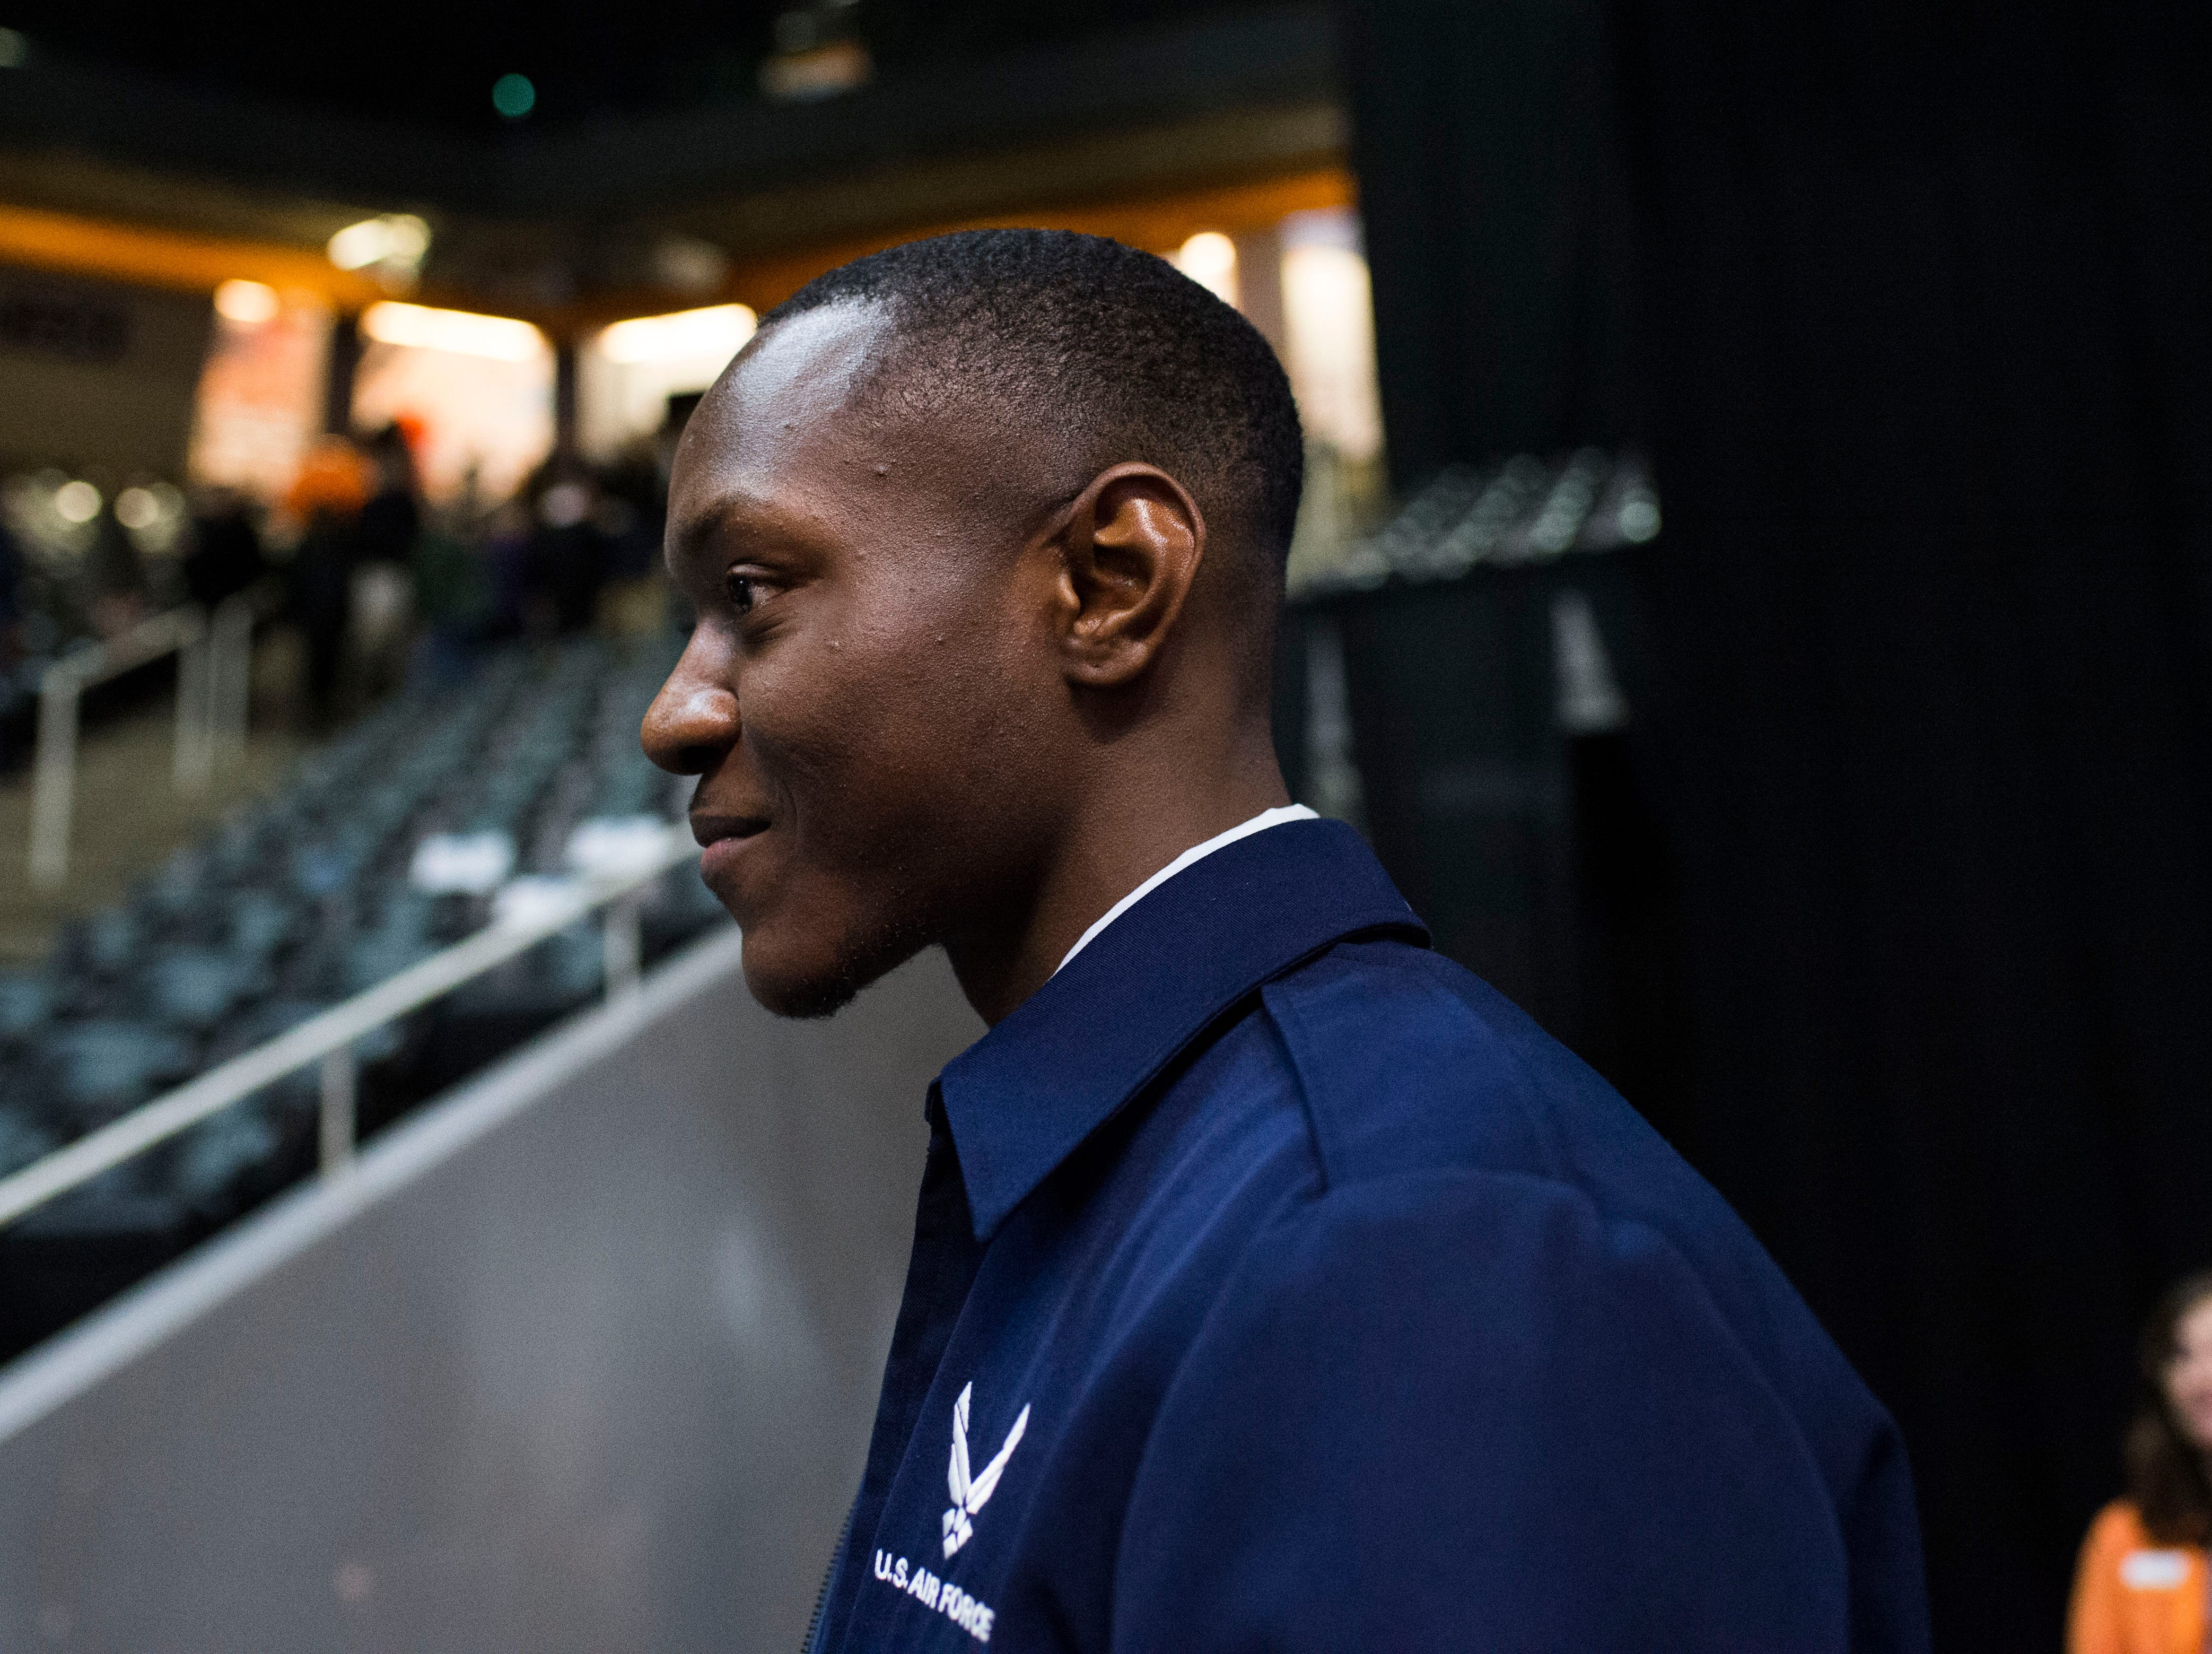 Airman Jerald Linsey Jr. stands in Thompson-Boling arena after surprising his sister Amaya Linsey when she received her diploma Friday, Dec. 14, 2018. The two had not seen each other in a year.